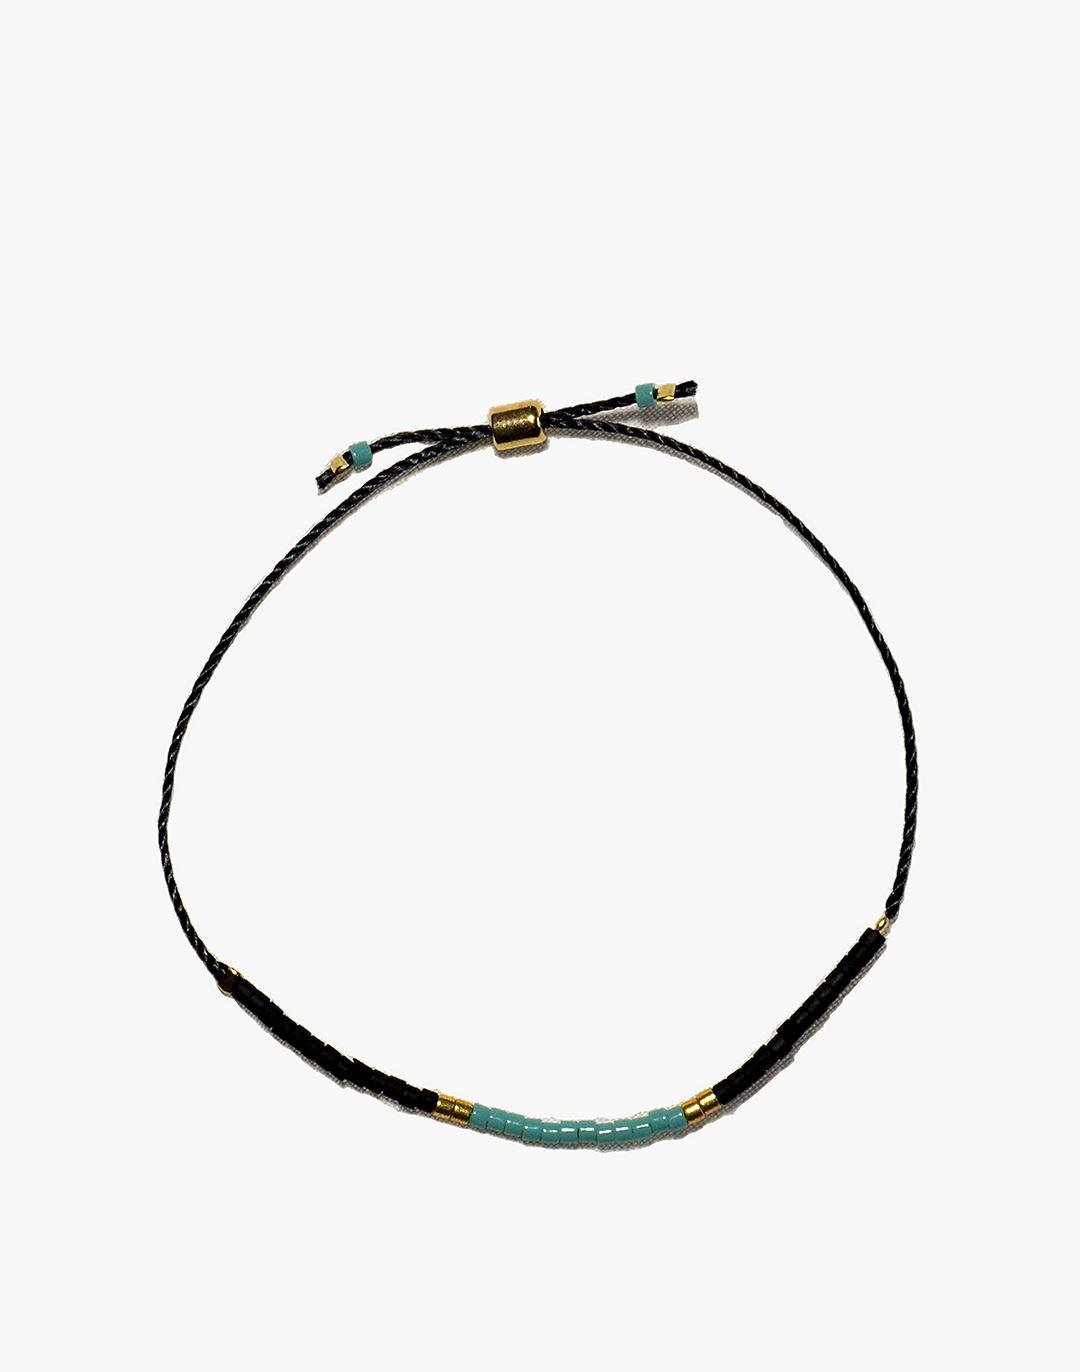 Cast of Stones Beaded Intention Bracelet in Turquoise and Black